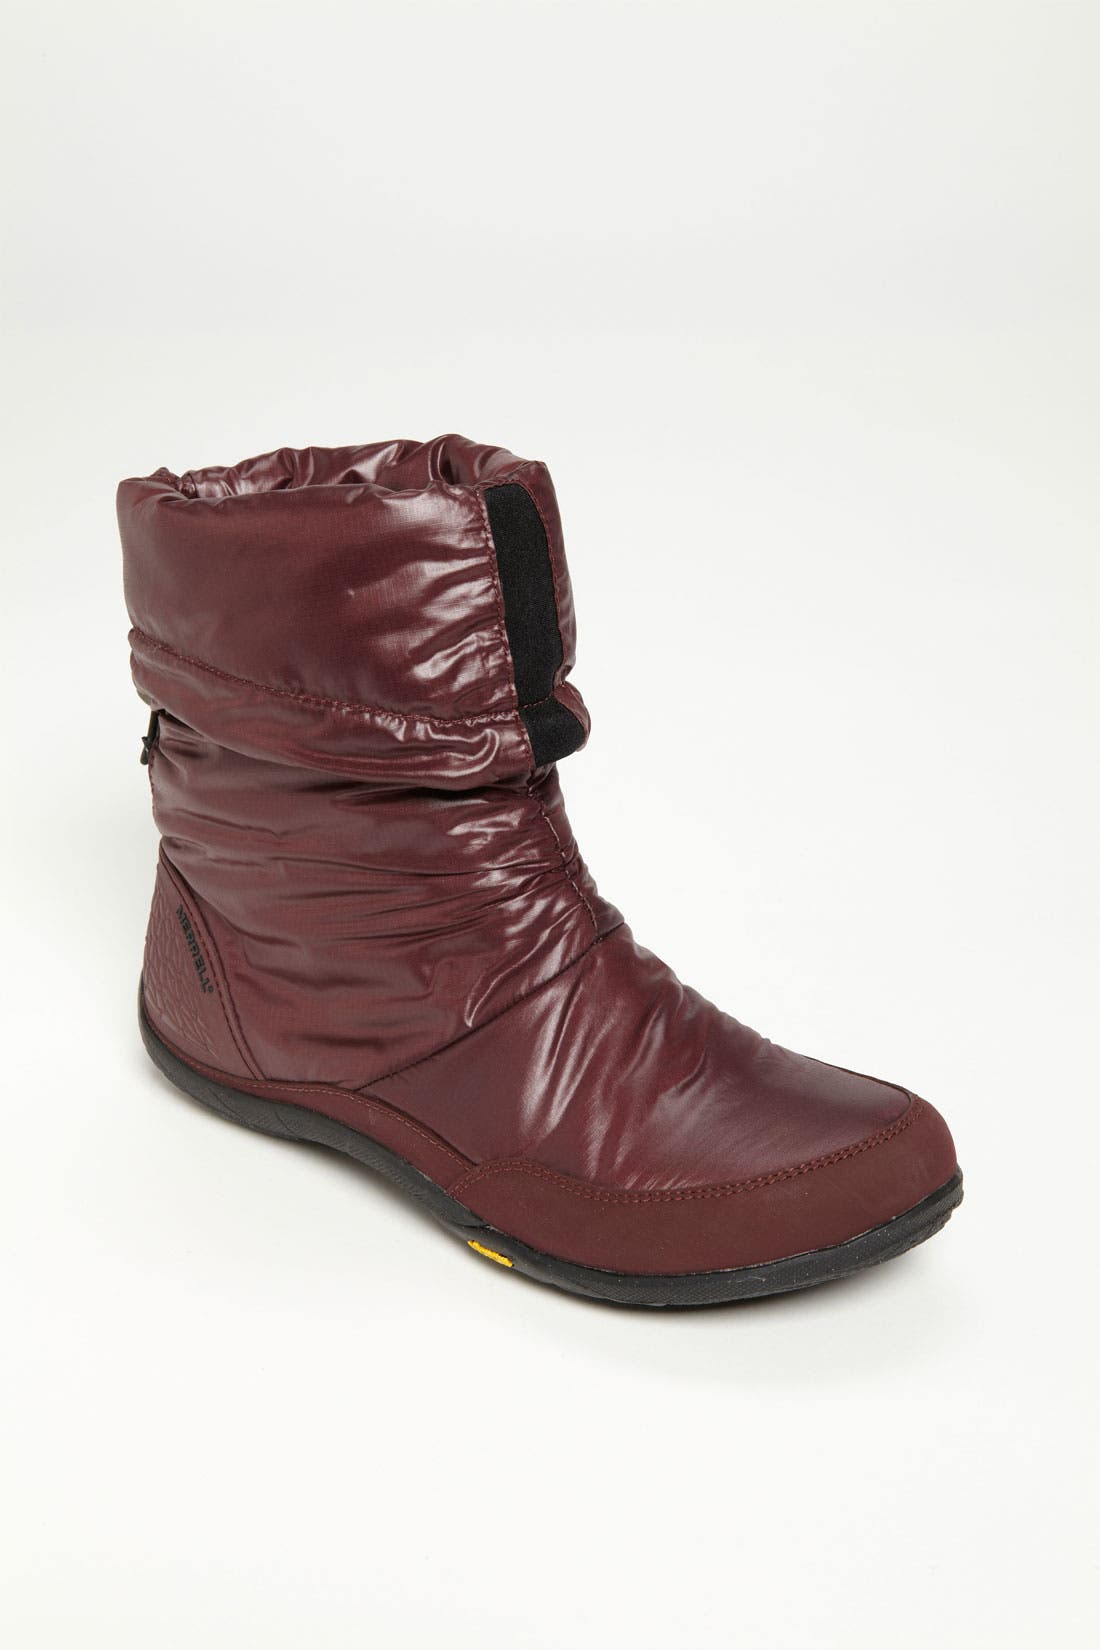 Alternate Image 1 Selected - Merrell 'Frost Glove' Boot